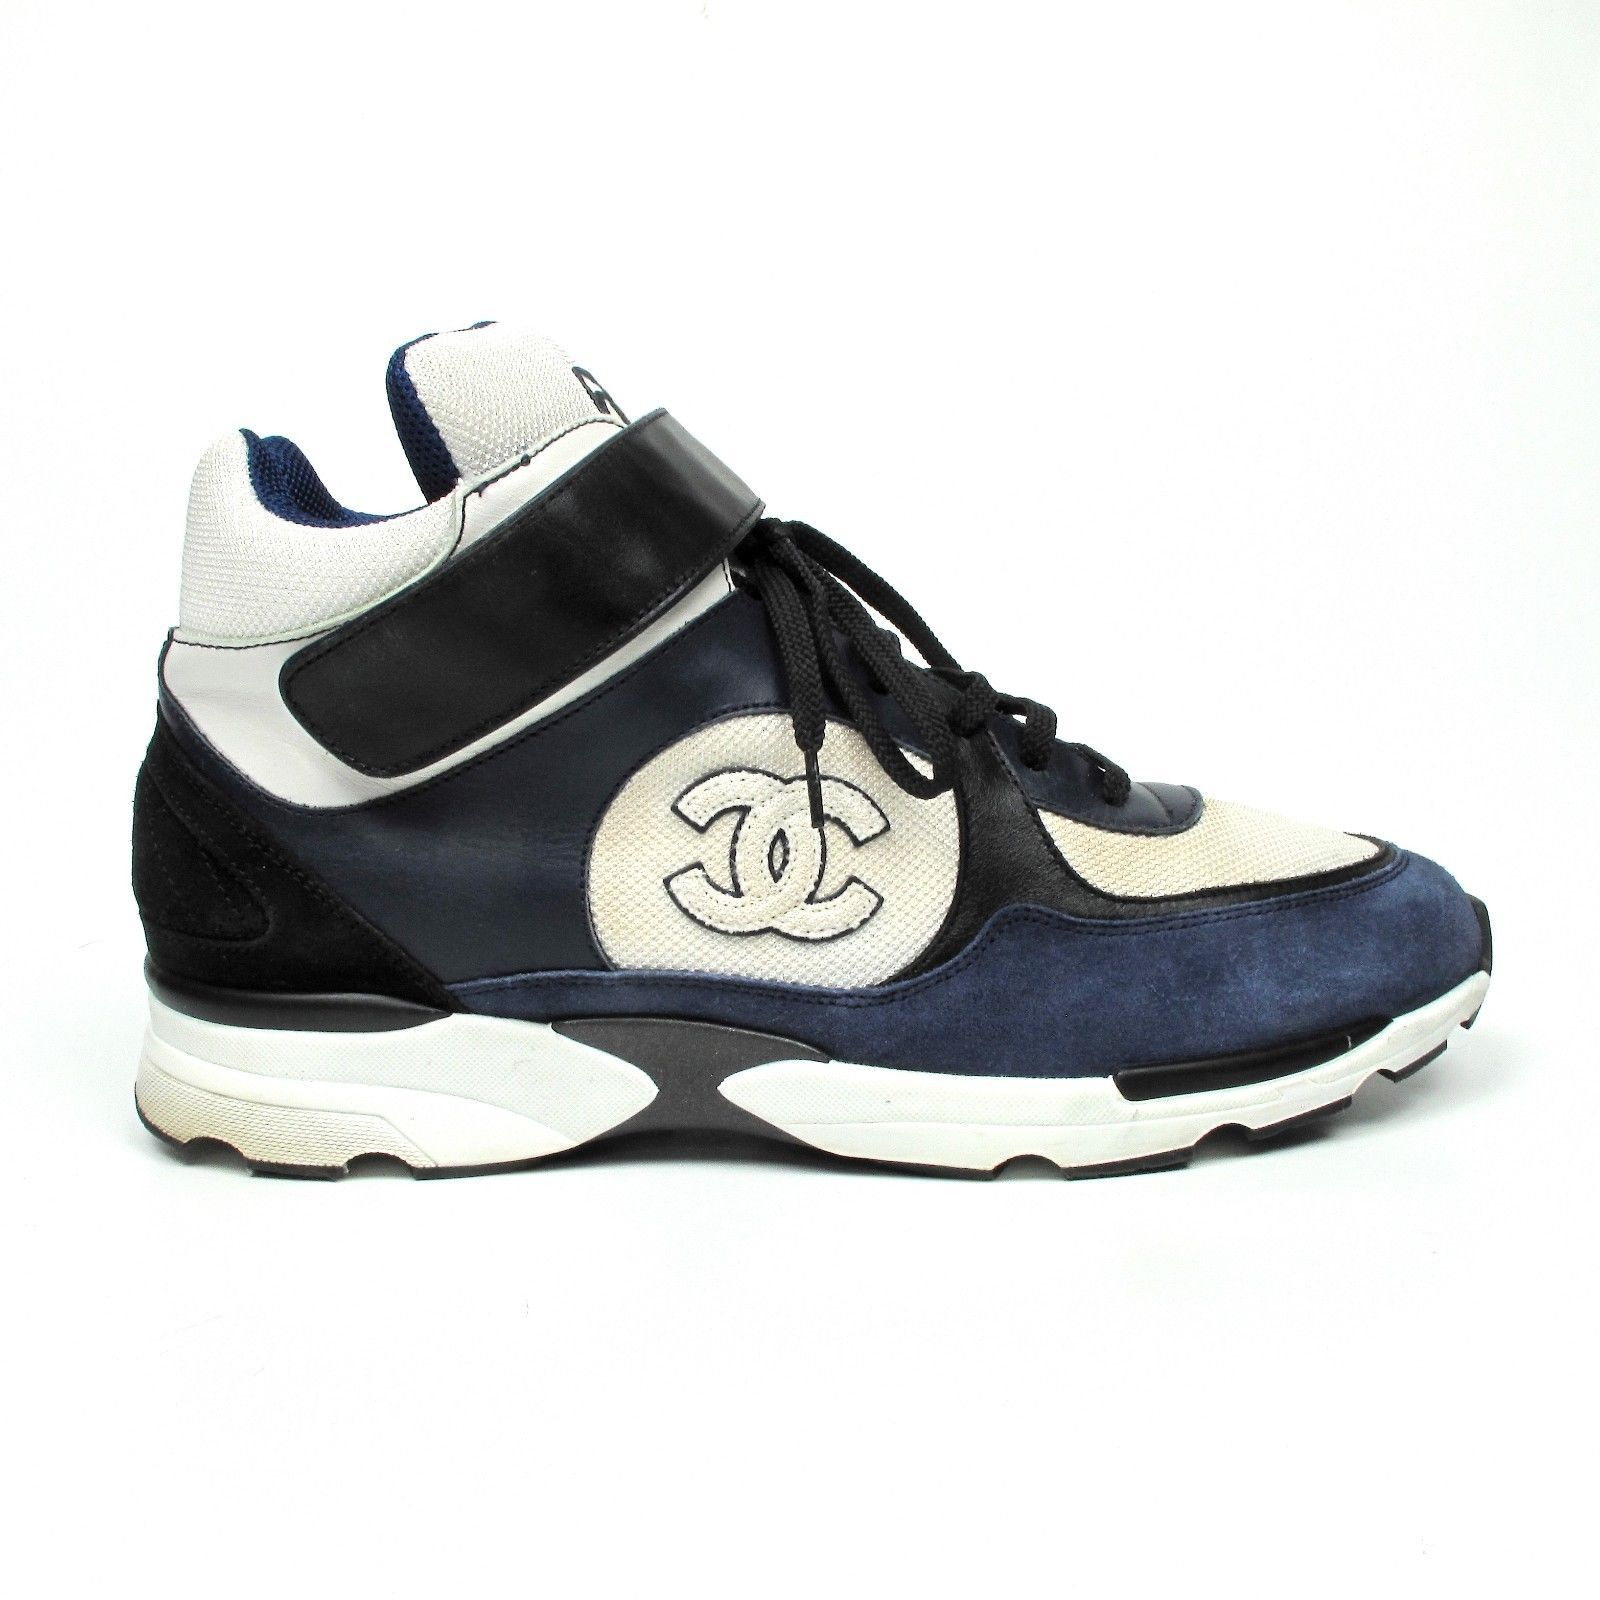 CHANEL MENS SNEAKERS US 12 - 45